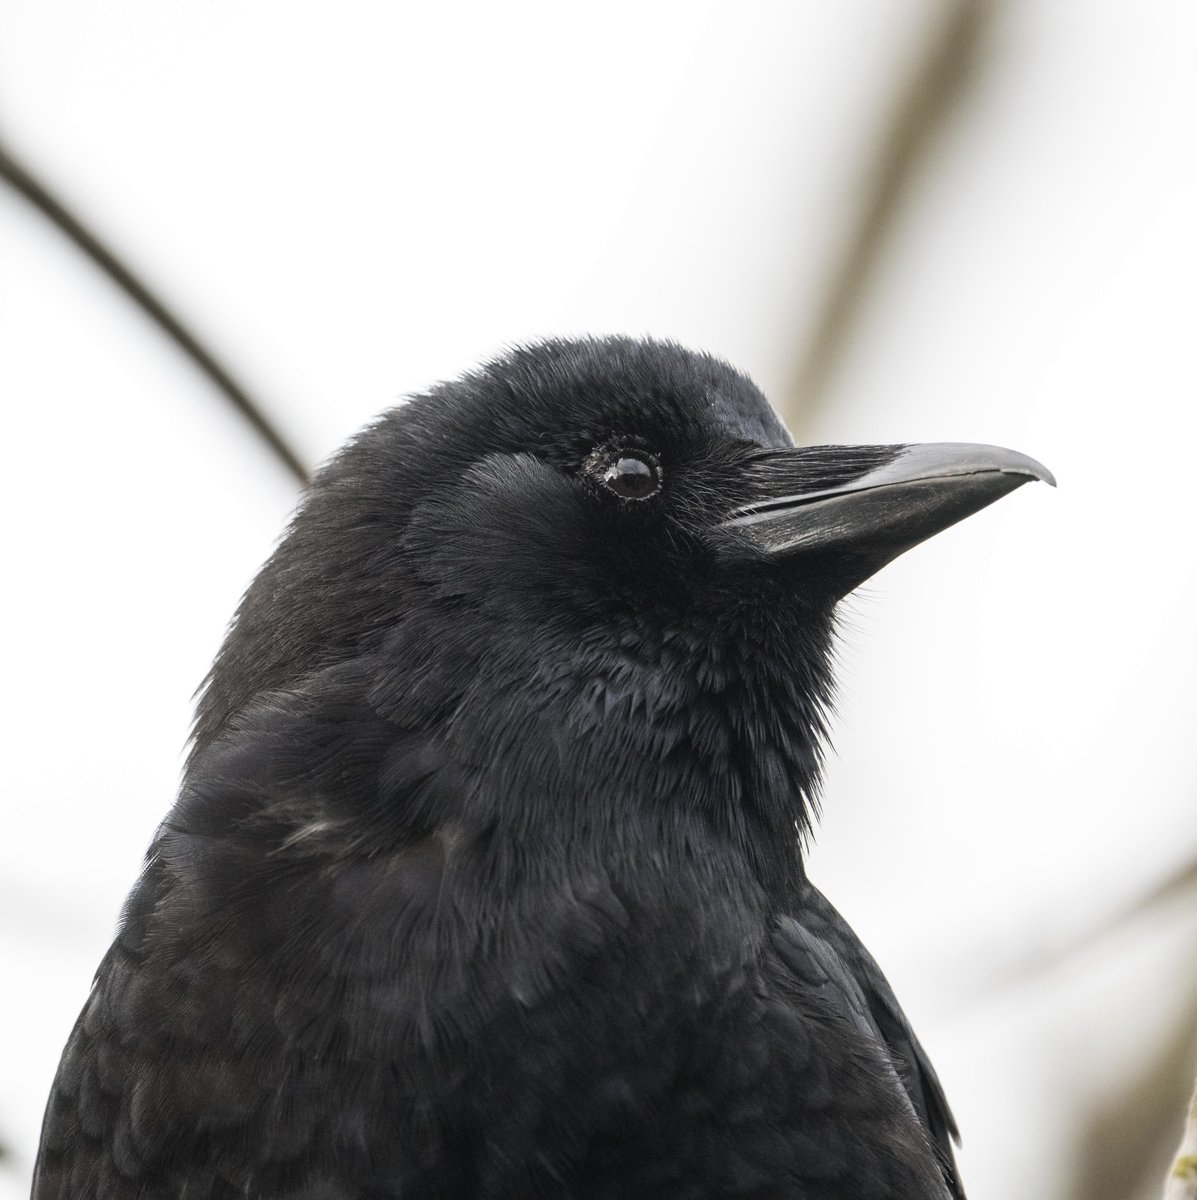 I highly recommend befriending a #crow! They are such beautiful intelligent birds.🖤